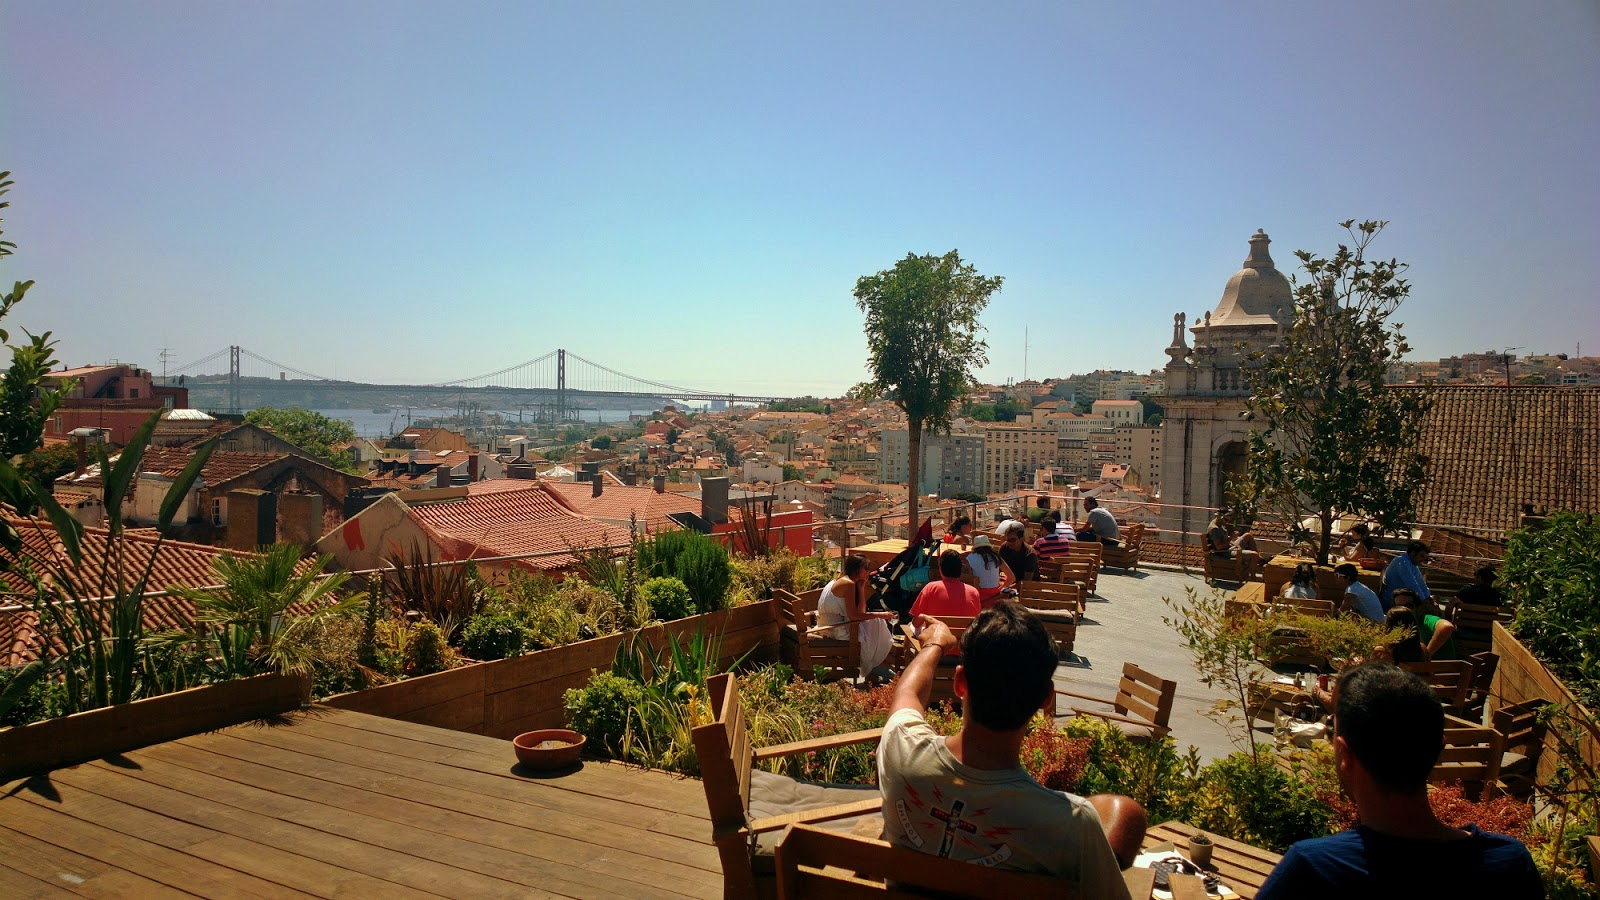 Incentive-travel-ideas-best-rooftop-bars-in-portugal-2